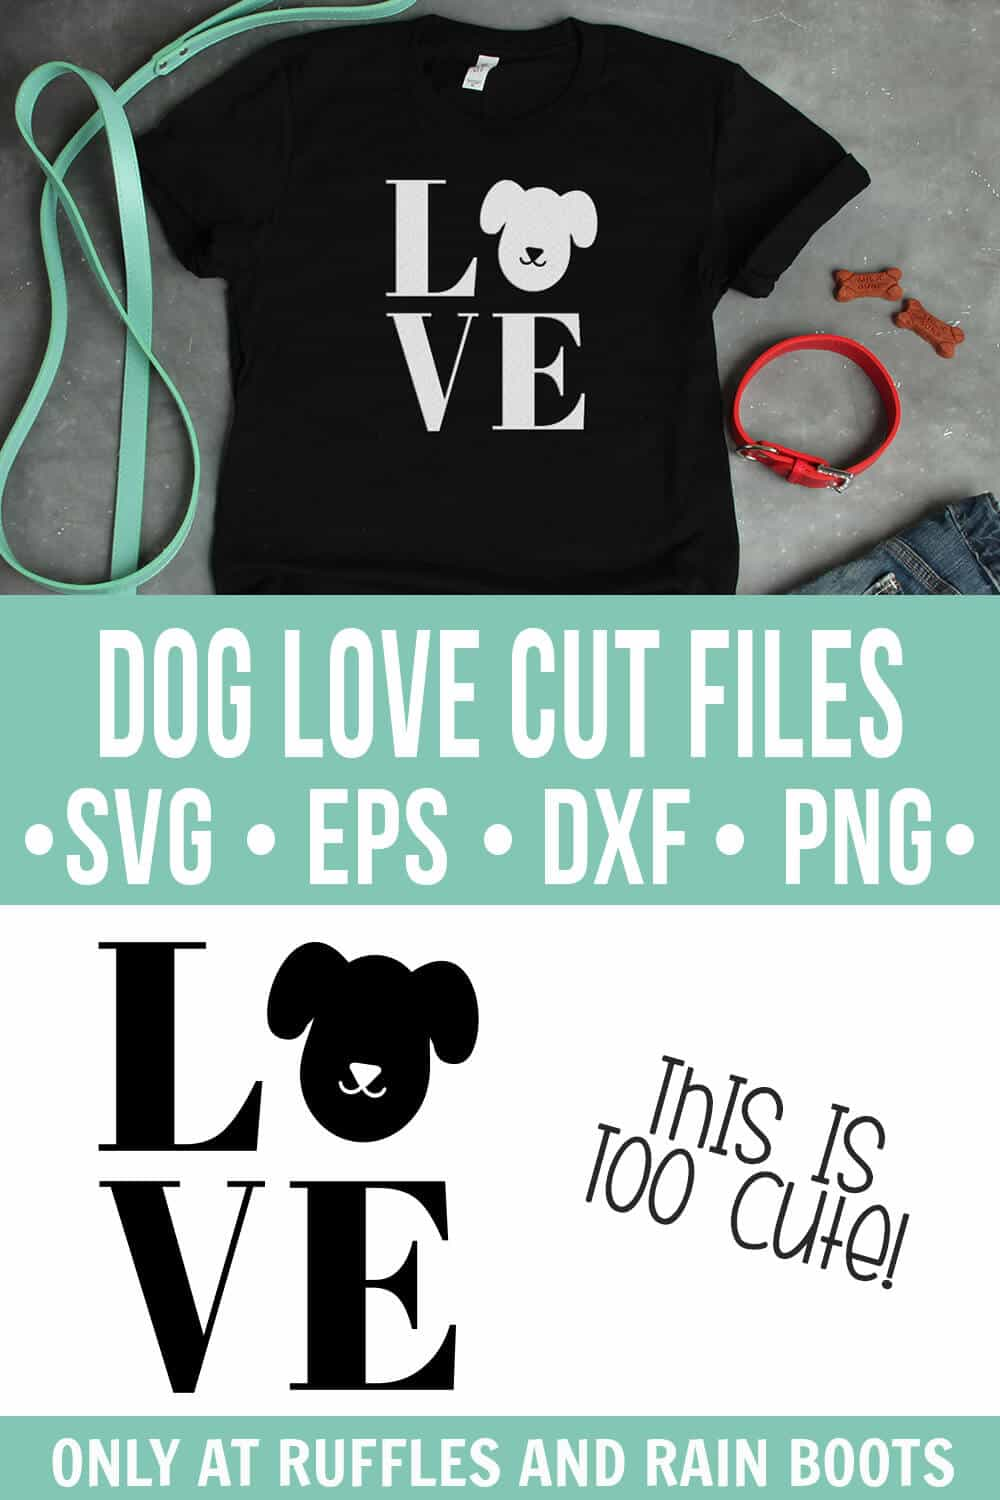 collage of white dog love svg on black t shirt with text which reads dog love cut file